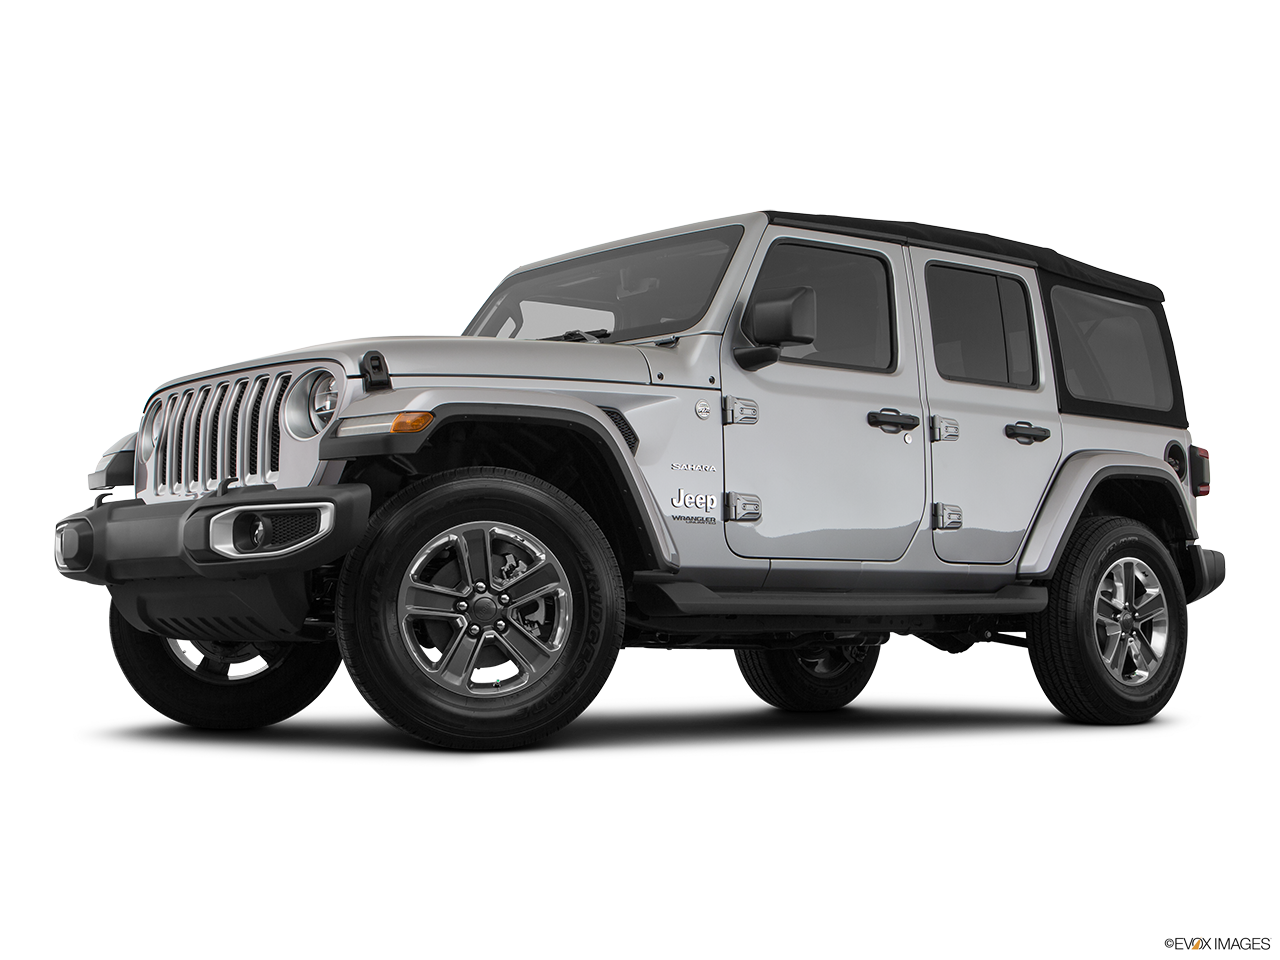 2021 Jeep Wrangler Unlimited photo